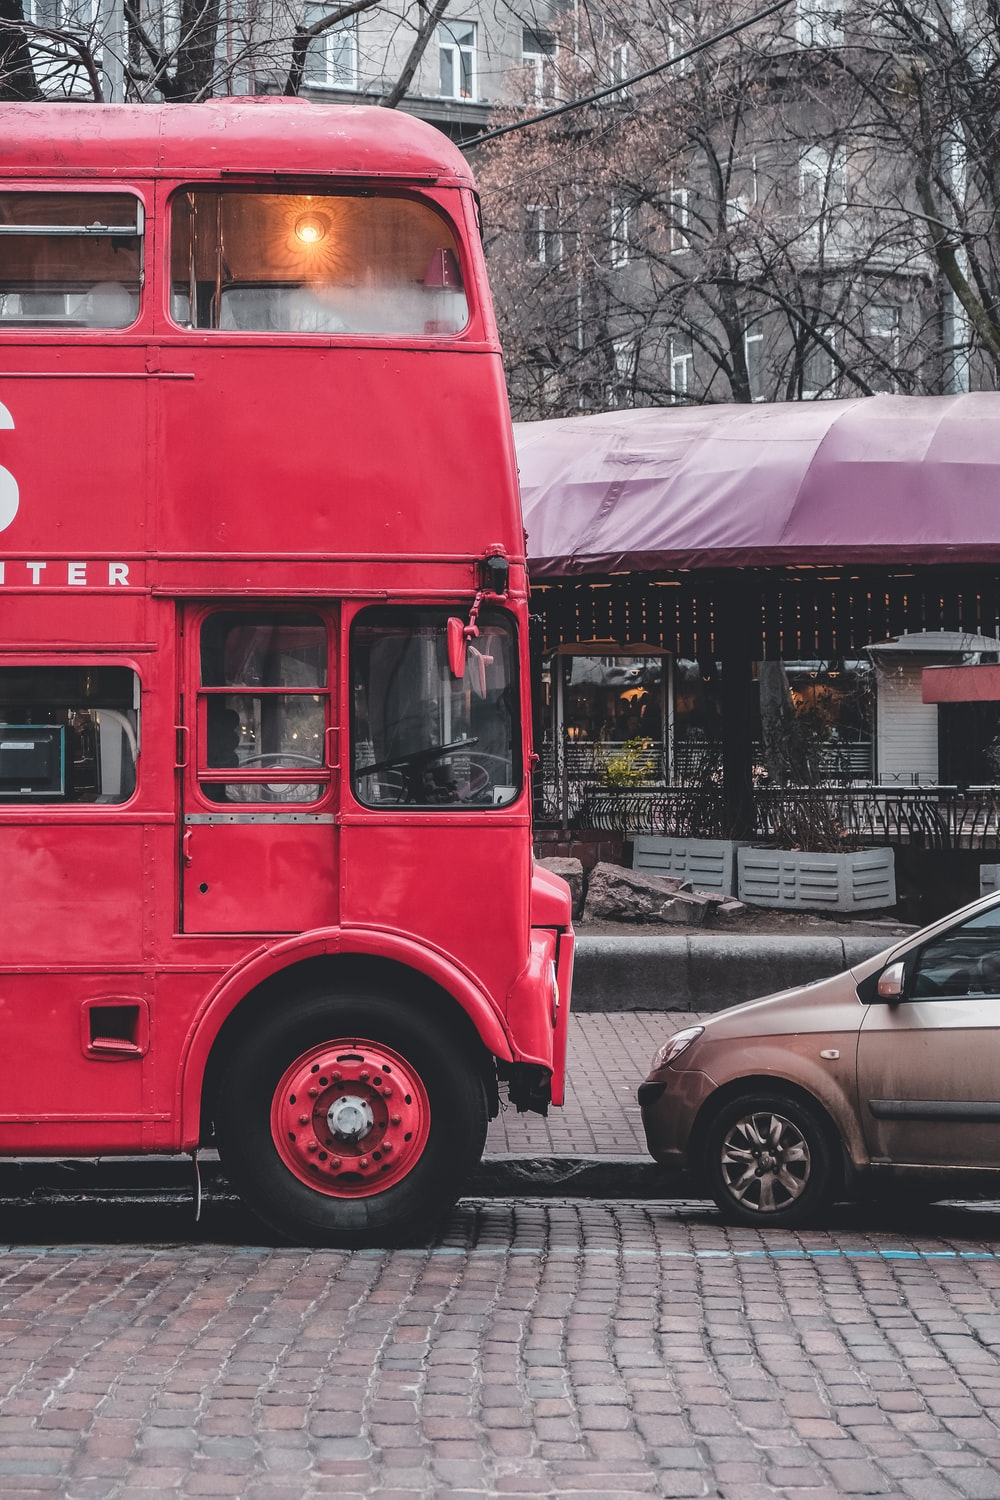 red double decker bus on road during daytime